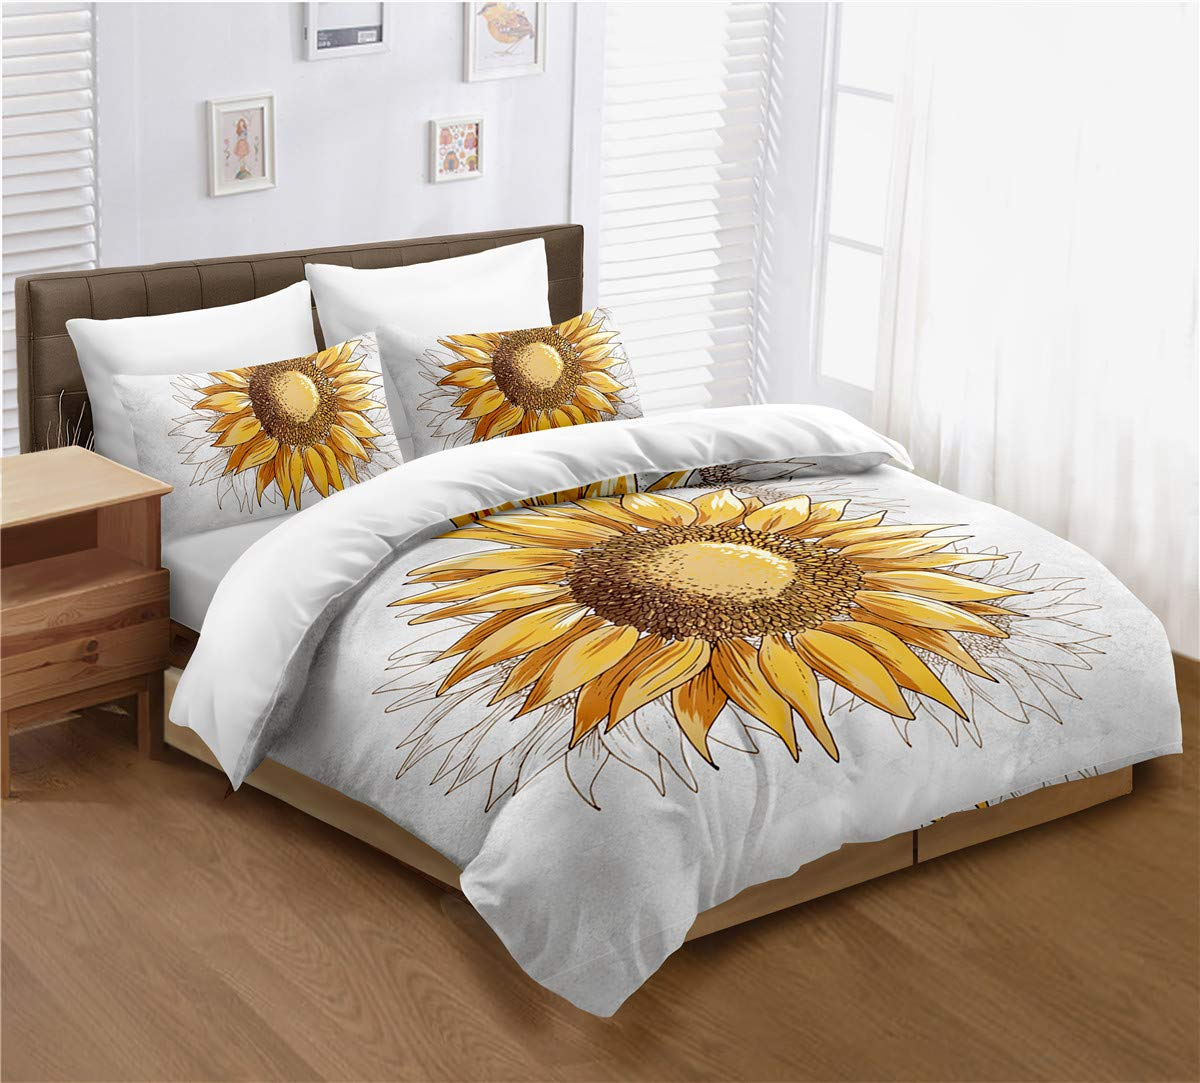 Sunflower Duvet Cover Set Twin Size, Yellow Sunflowers Painting Effect and in Minimalistic Design Artwork, Decorative 2 Piece Bedding Set with 1 Pillow Cases, Modern Style for Men and Women